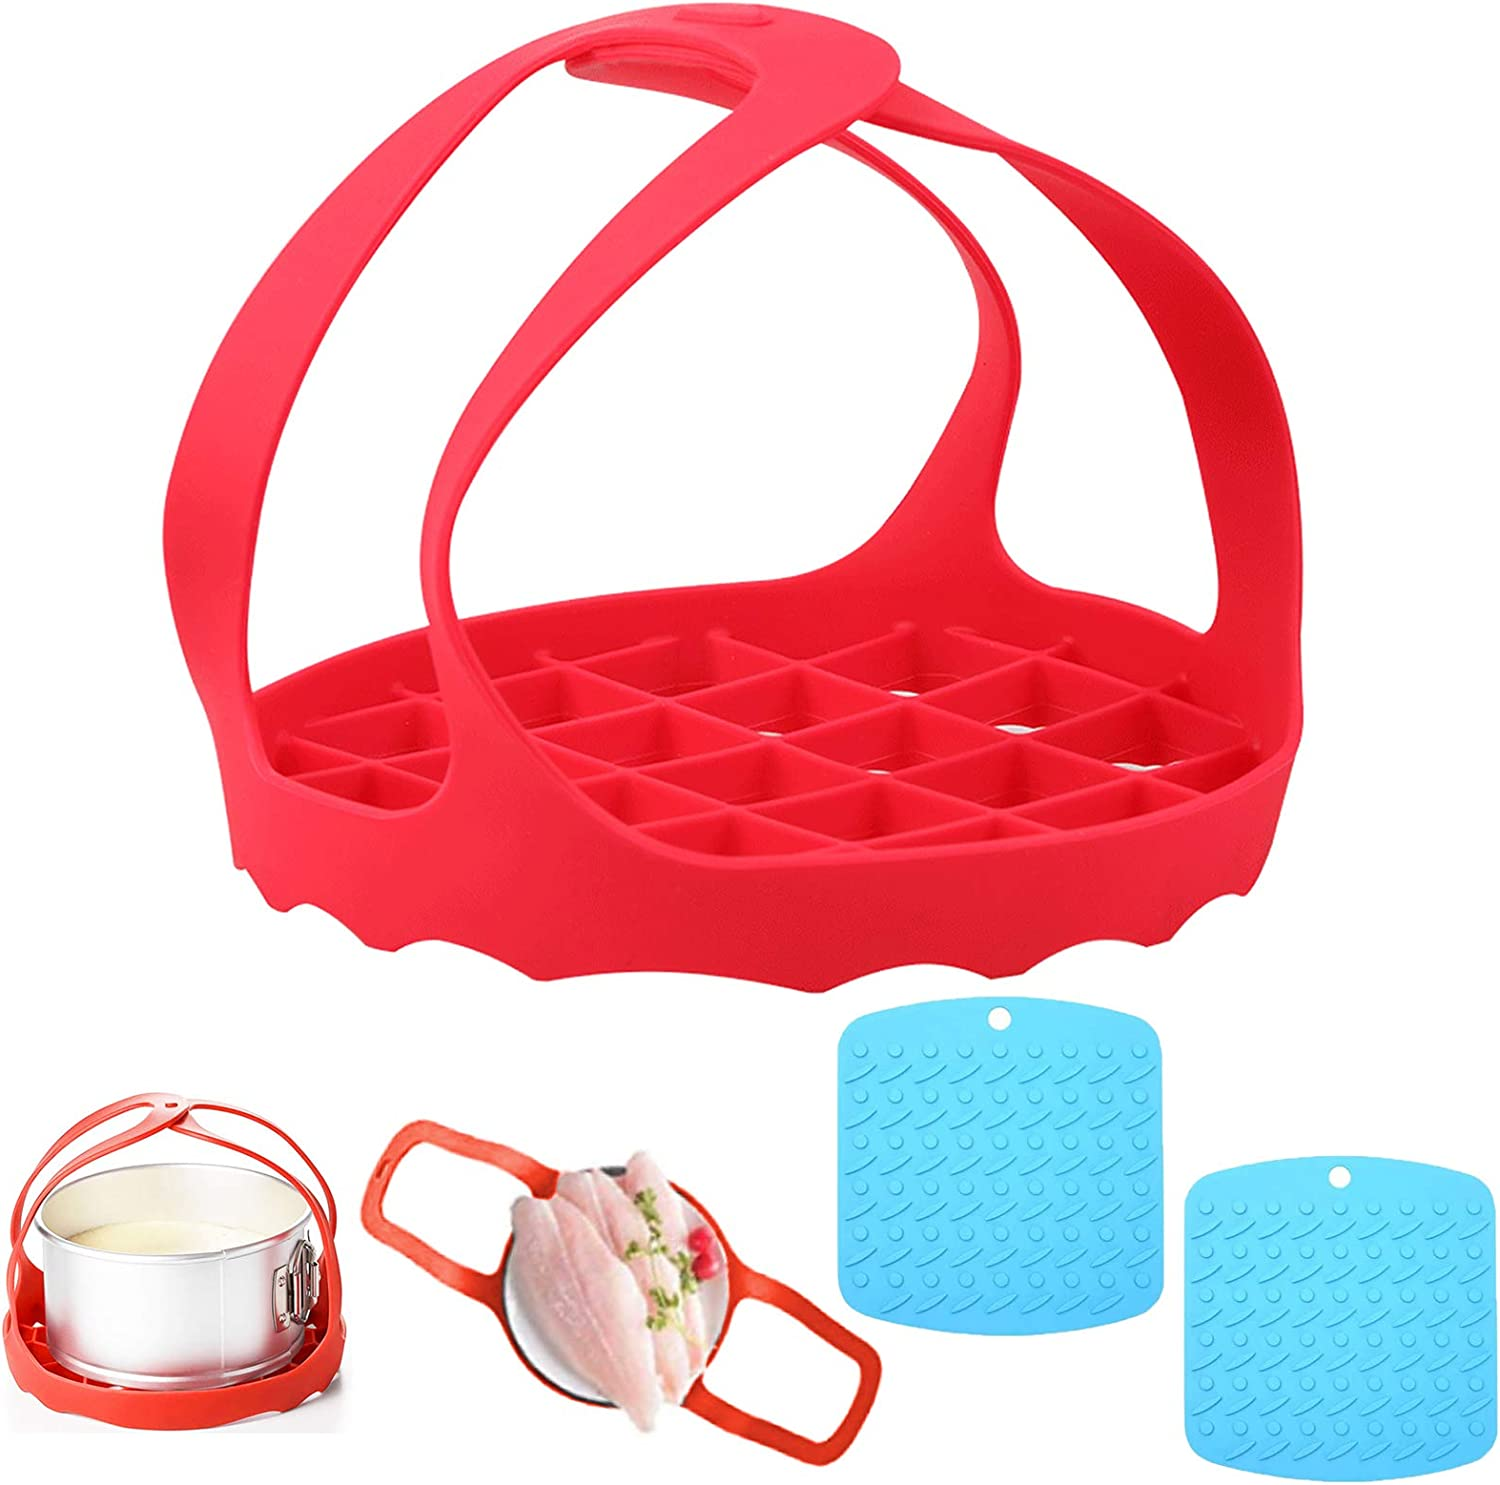 GUIZREN Silicone Sling Trivets Mats Accessories Compatible with Instant Pot 6 Qt / 8 Qt and Other Brand Pressure Cookers, Non-Slip Heat Resistant Lifter - 2 Silicone Hot Pads, Steamer Mats